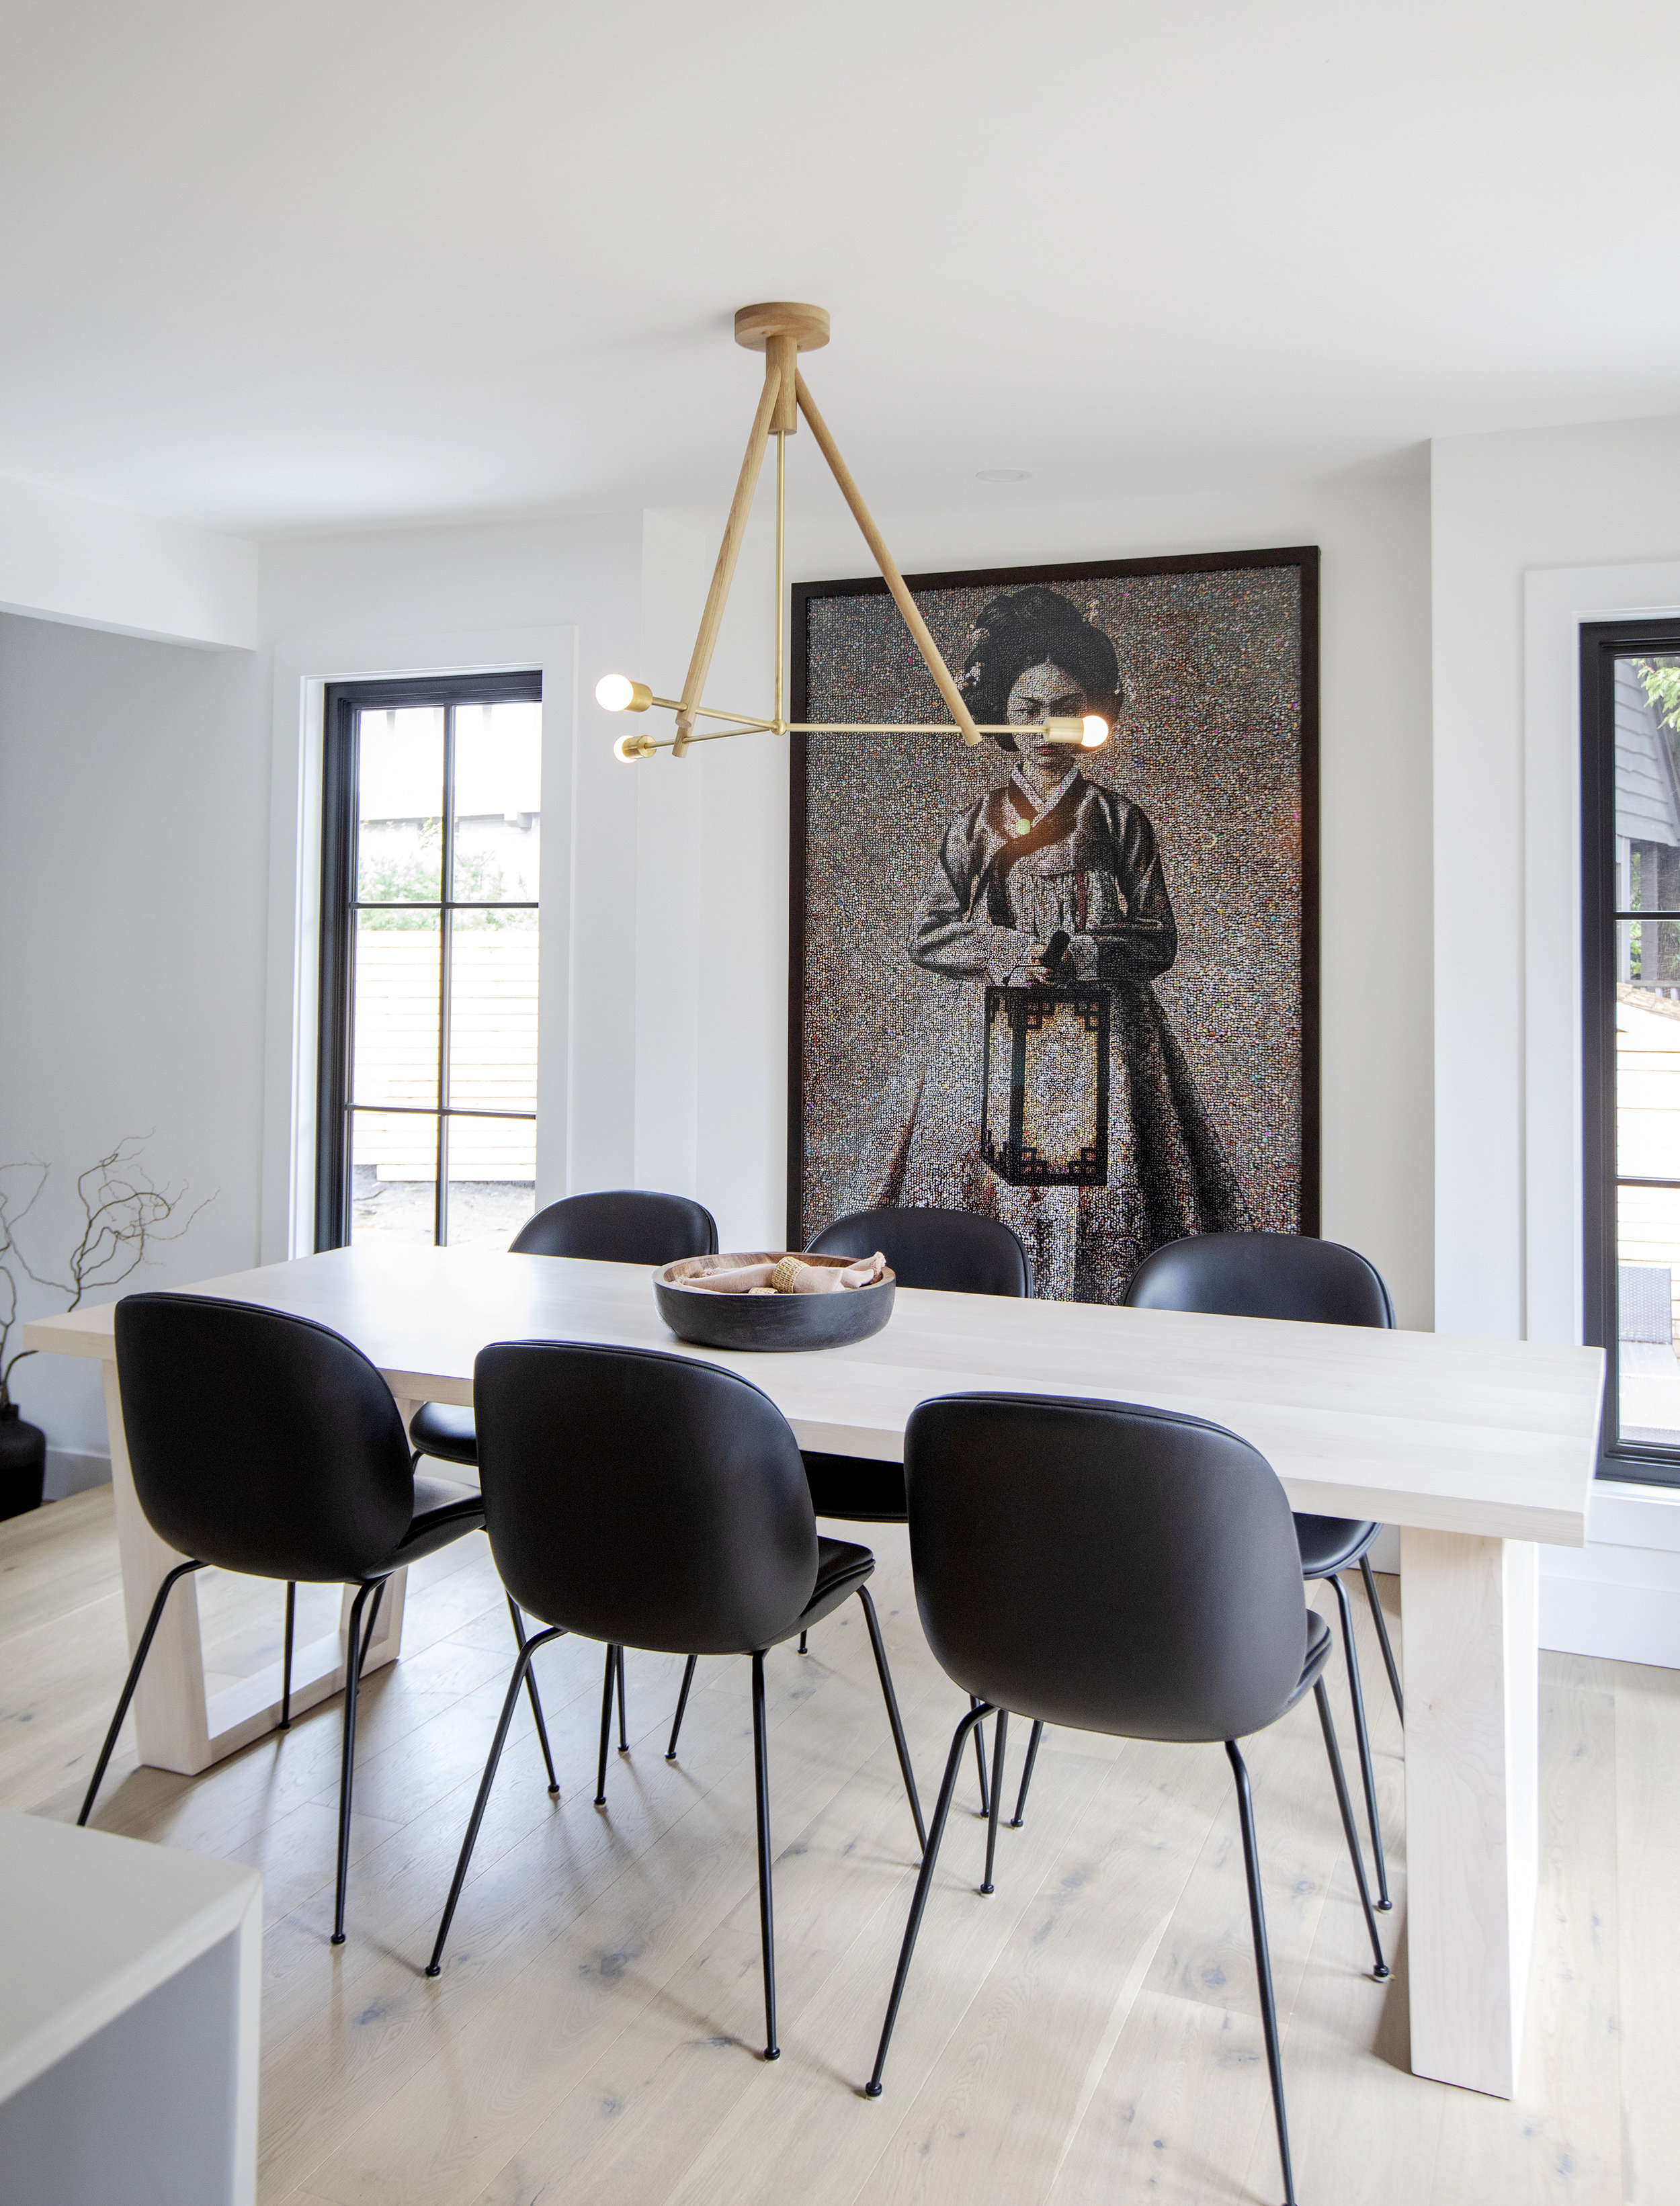 Dining room at Alderfield Place; white dining table surrounded by black dining chairs, a painting of a Japanese woman hangs behind.